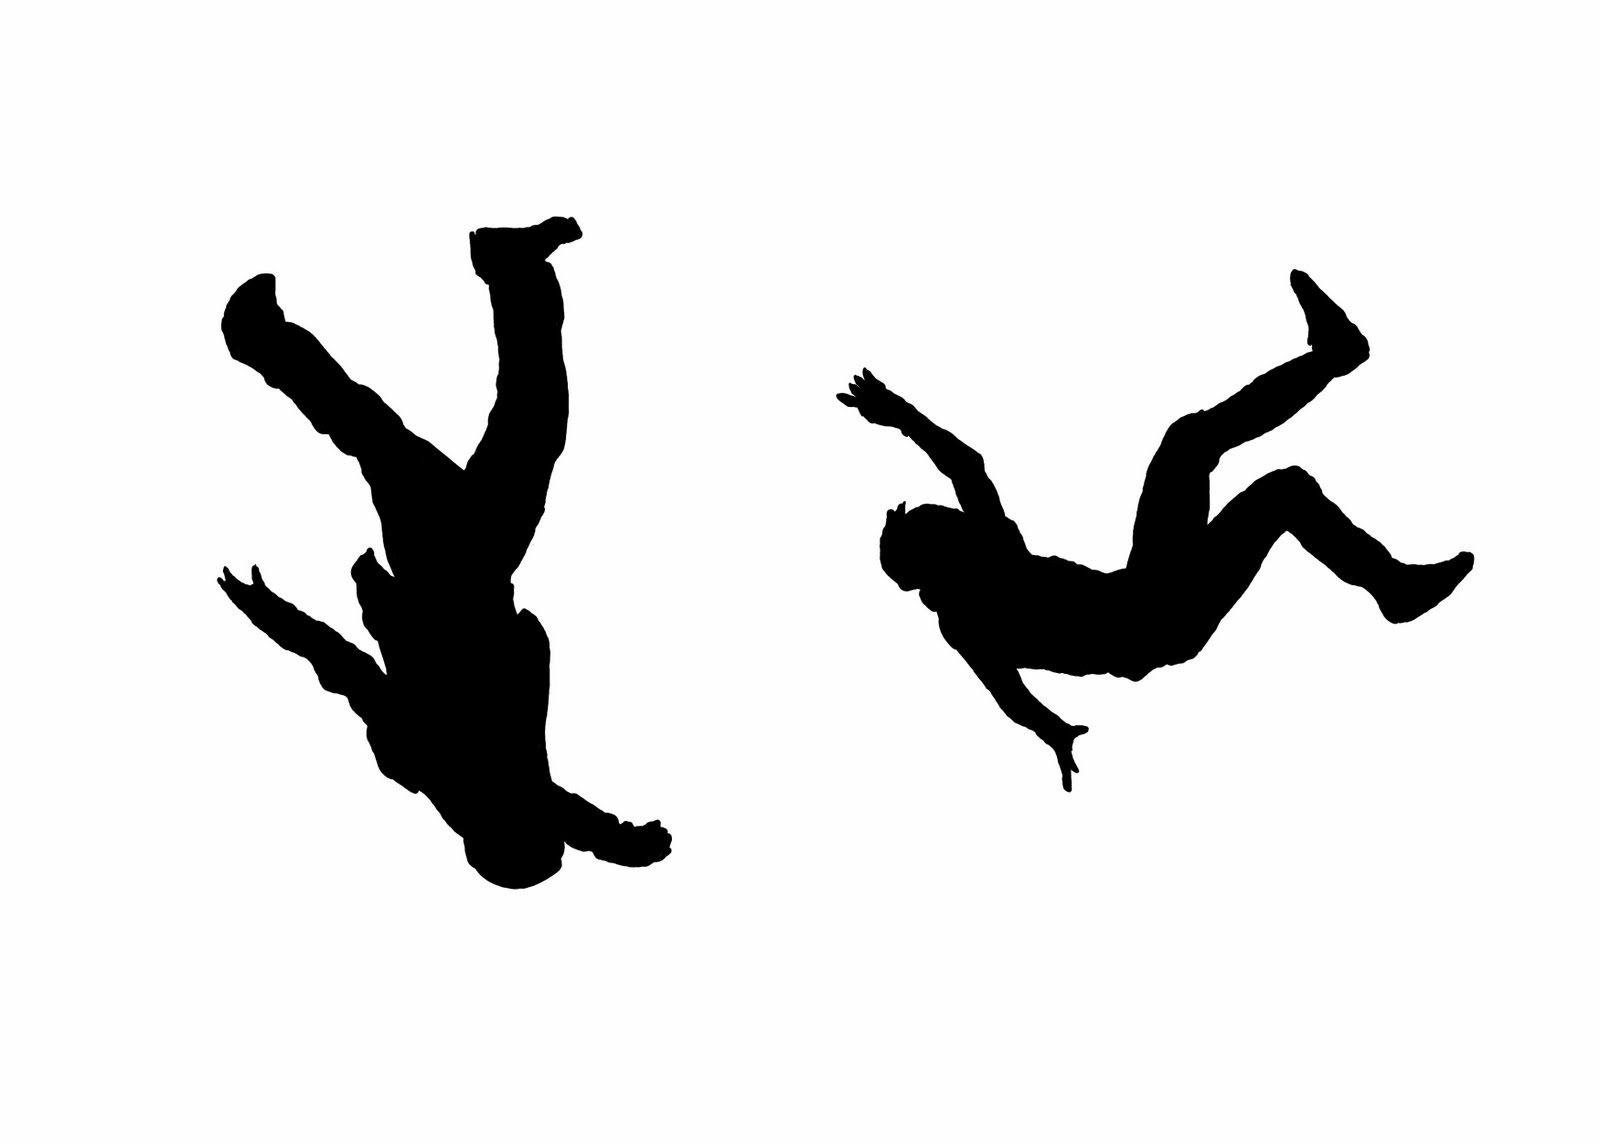 Falling Person.